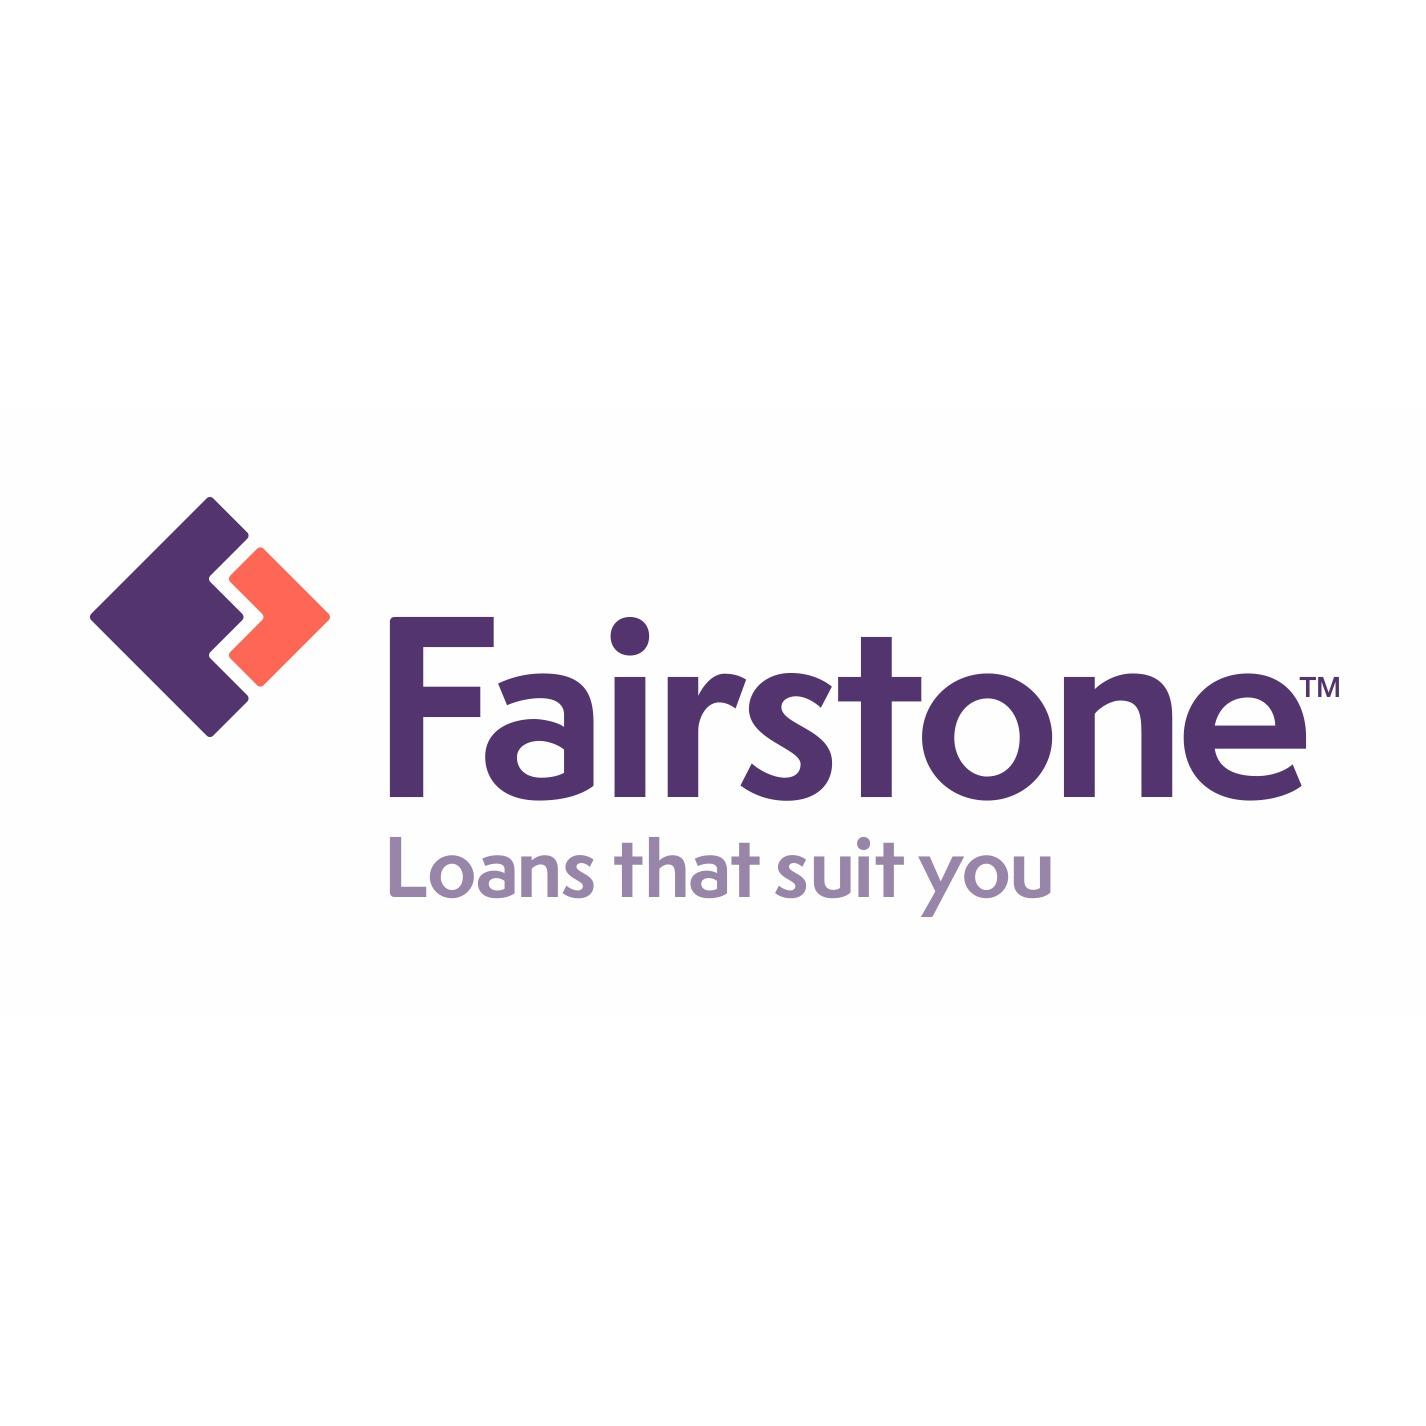 Fairstone - Bathurst, NB E2A 1A9 - (506)546-6628 | ShowMeLocal.com